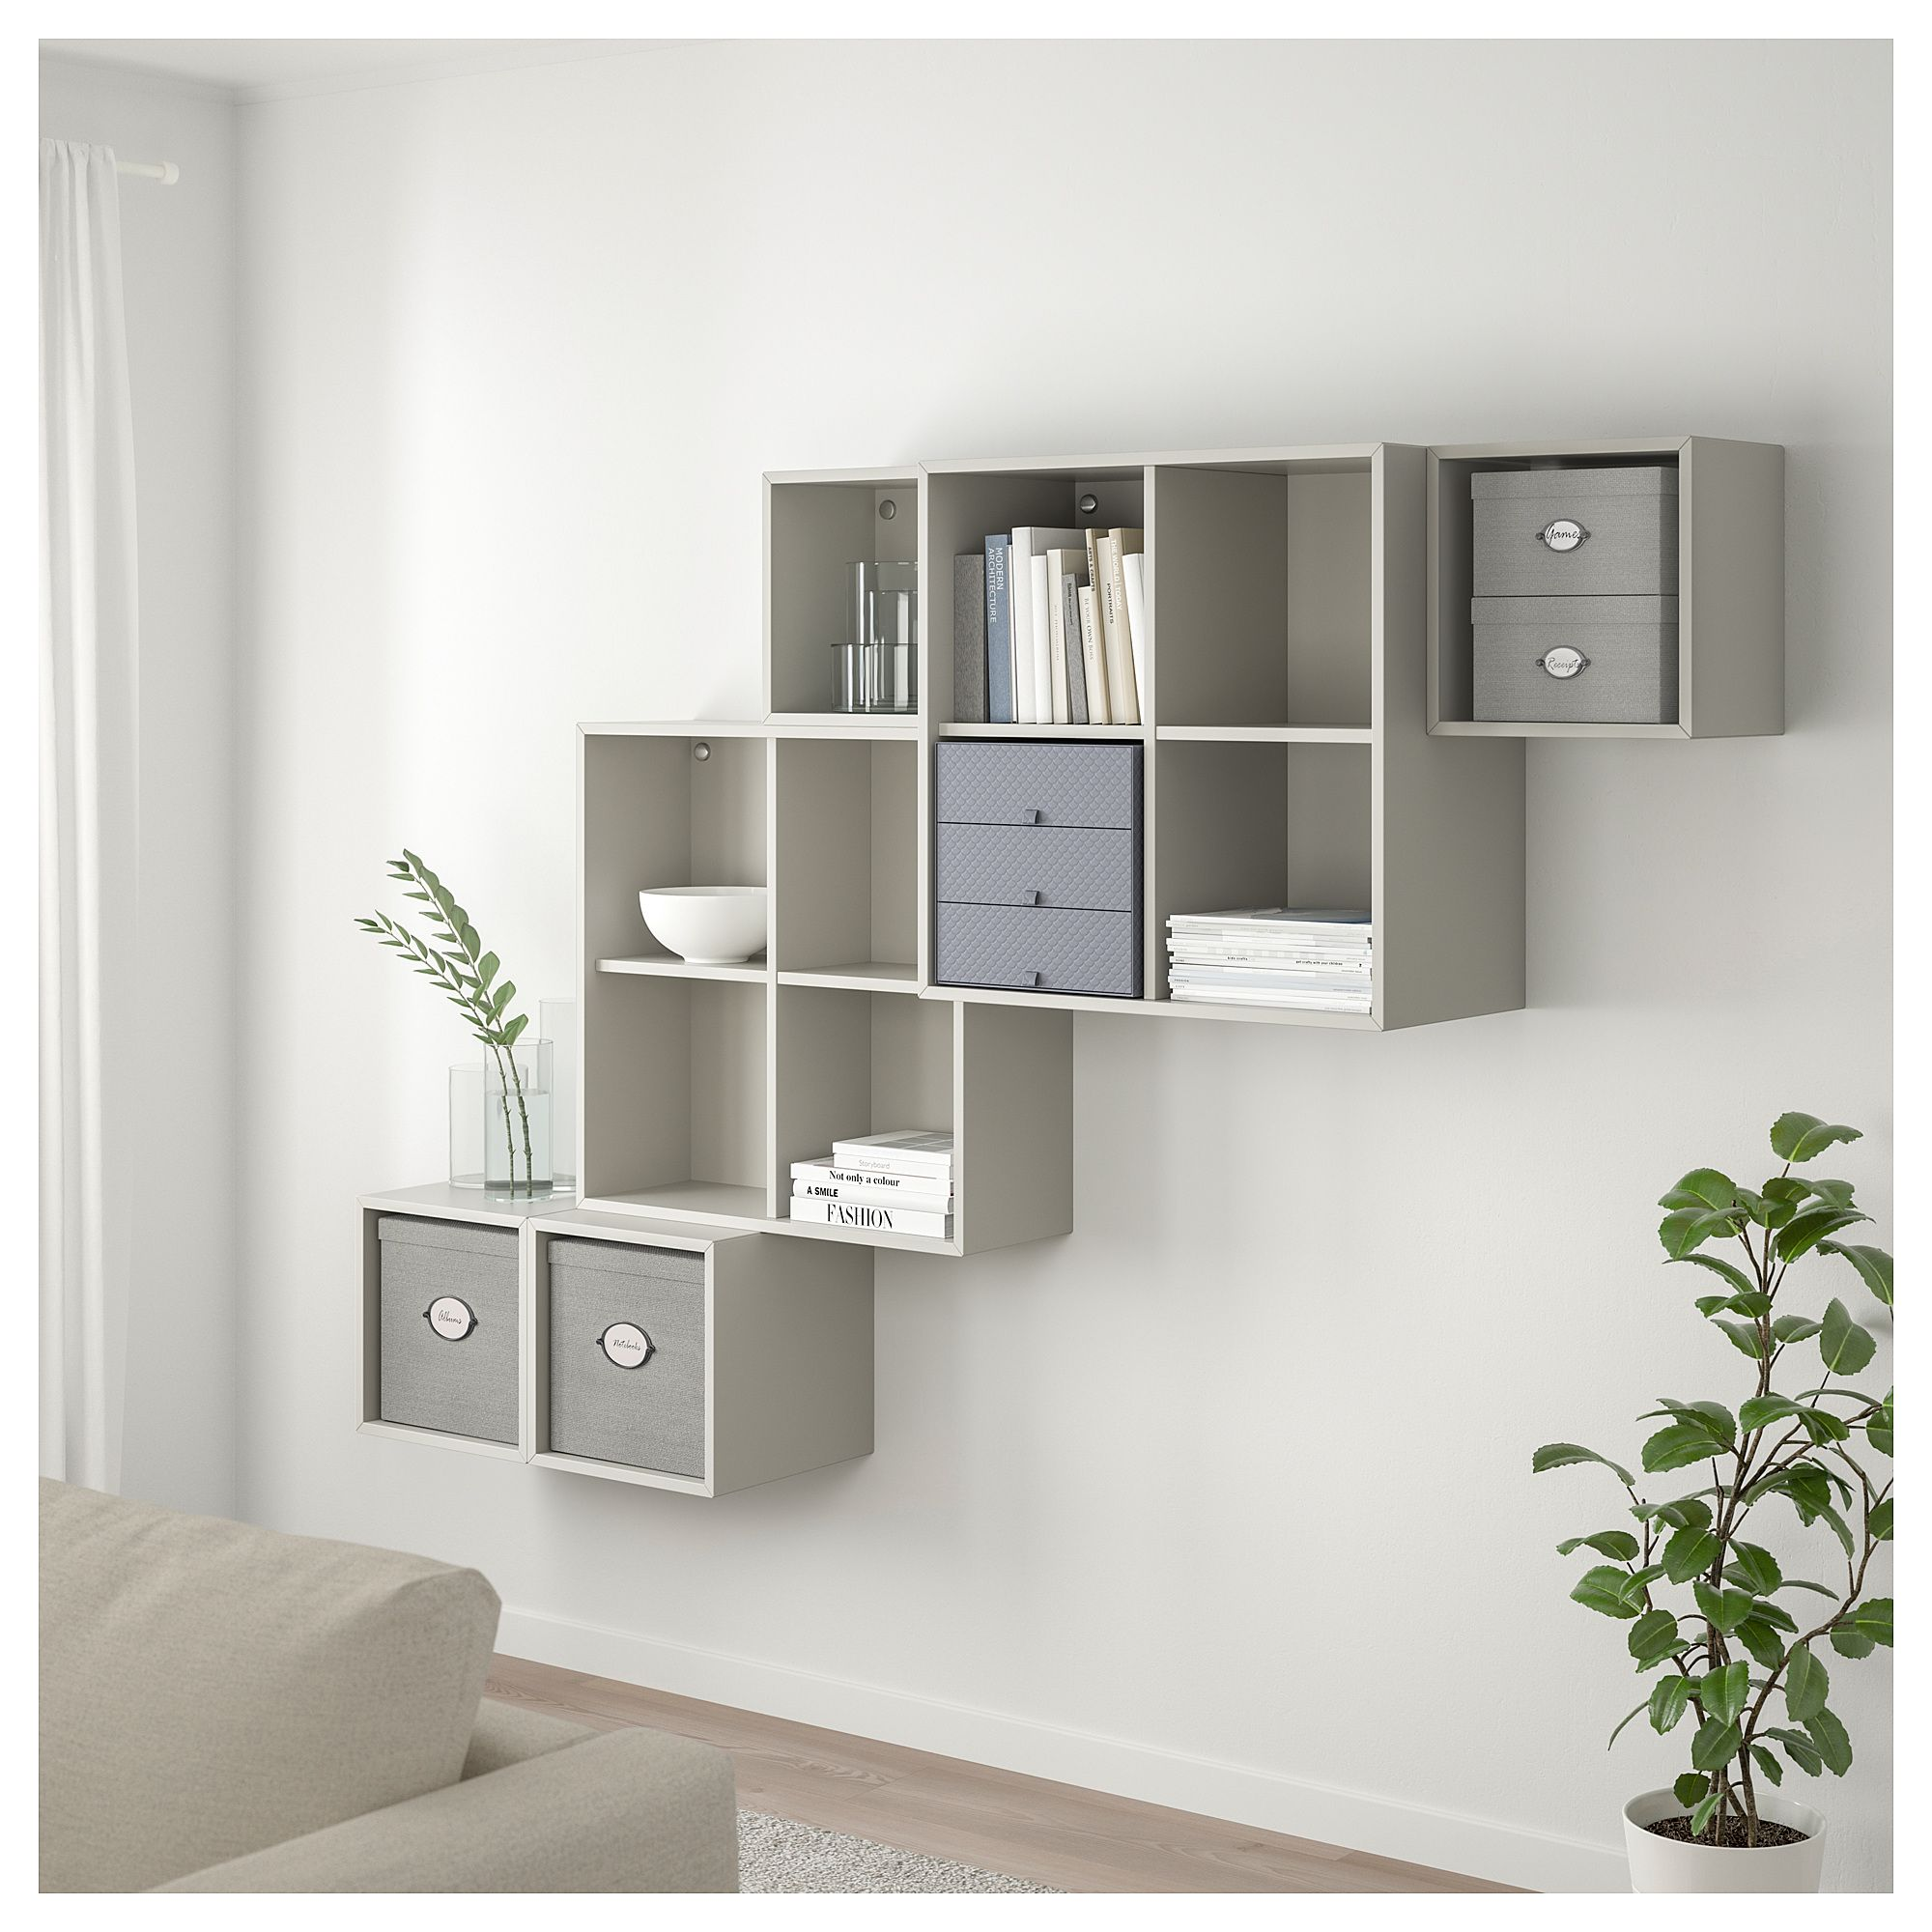 KVARNVIK Storage box with lid - gray. Find it here - IKEA in 9